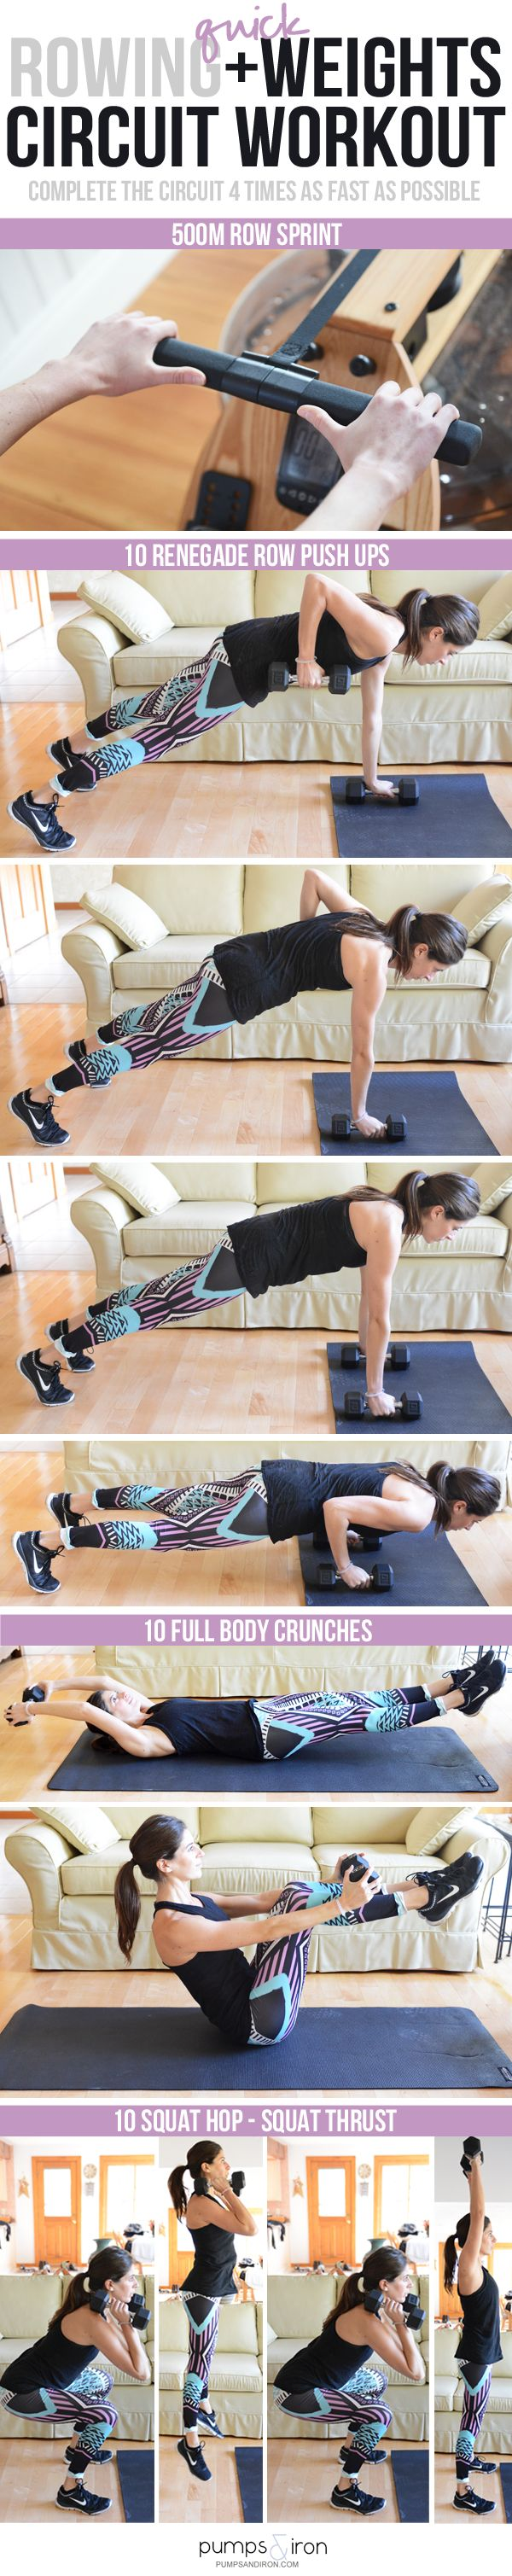 456 Best Work It Out Images On Pinterest Full Body Total Legs Workout Killer Circuit Totally Dead Superset A Quick But Tough Rowing Weights